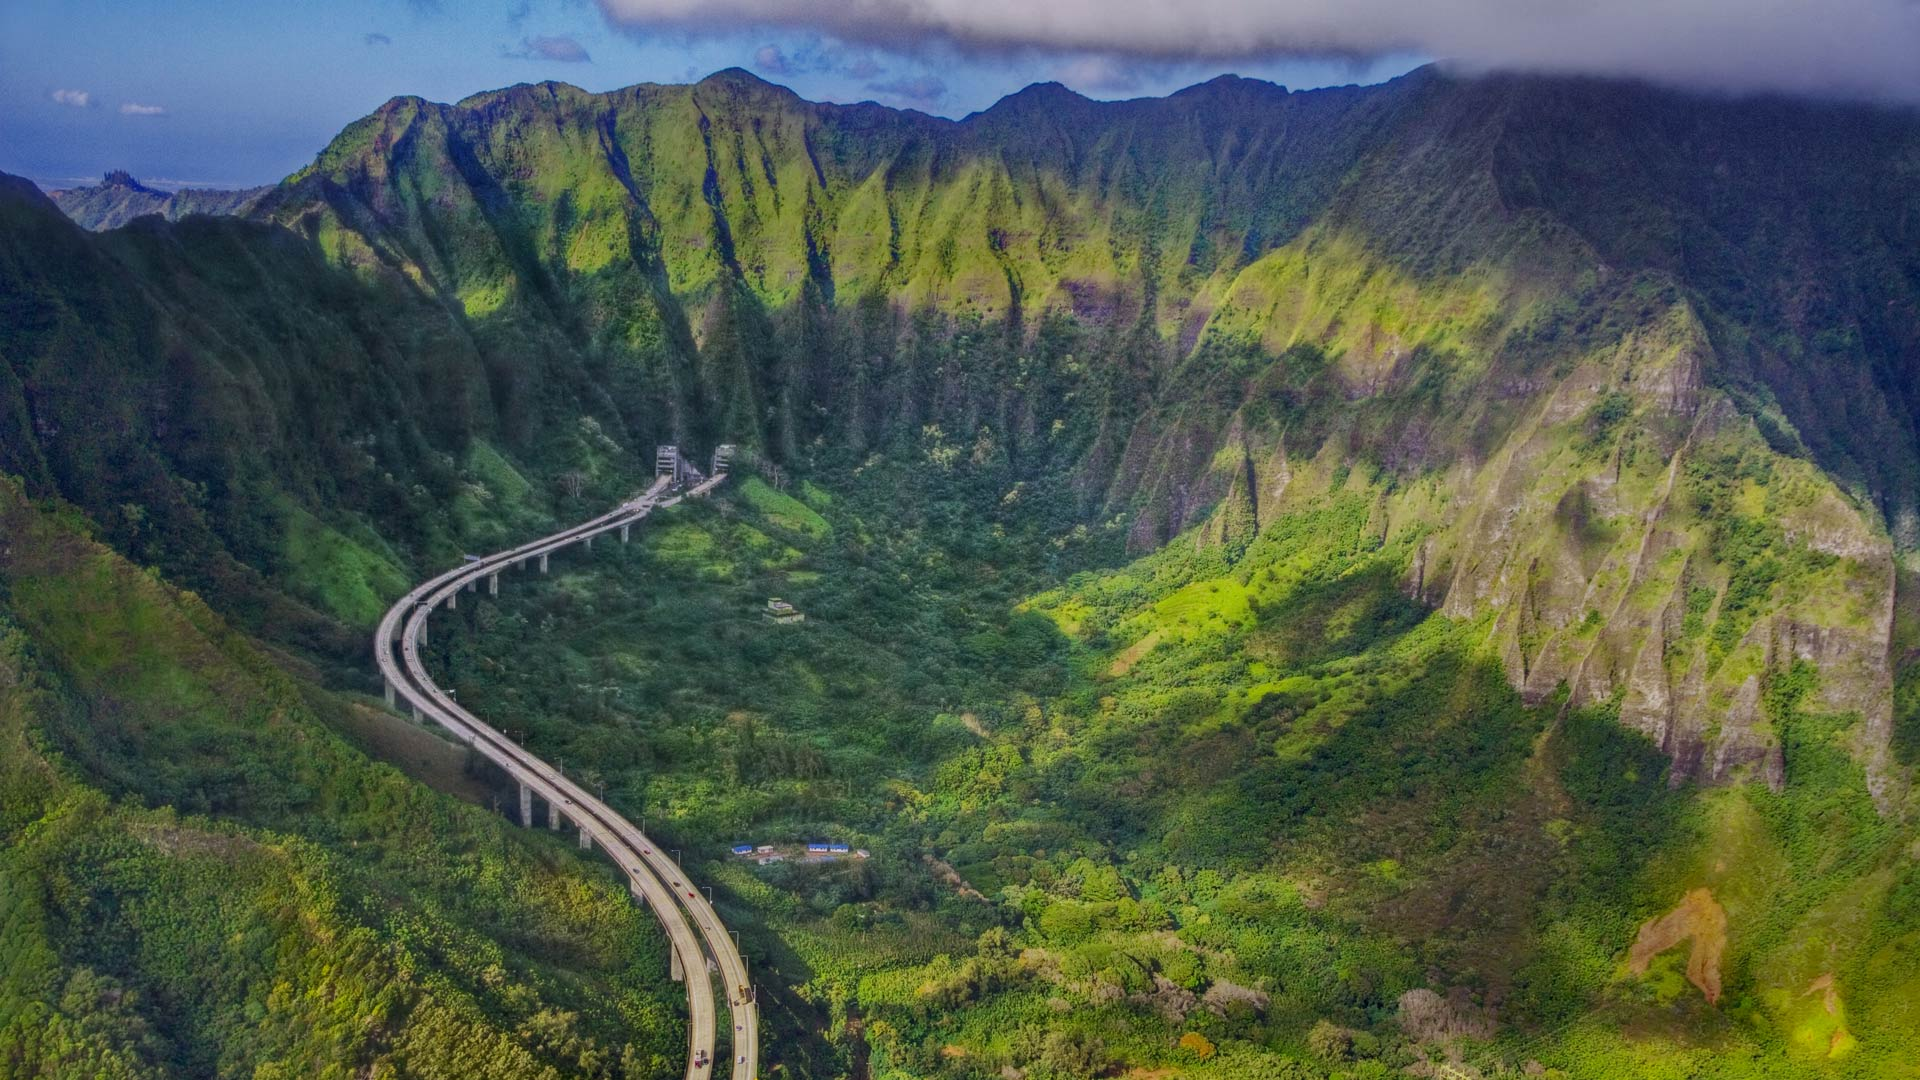 Interstate H-3 on the island of Oahu, Hawaii (© Royce Bair/Getty Images)